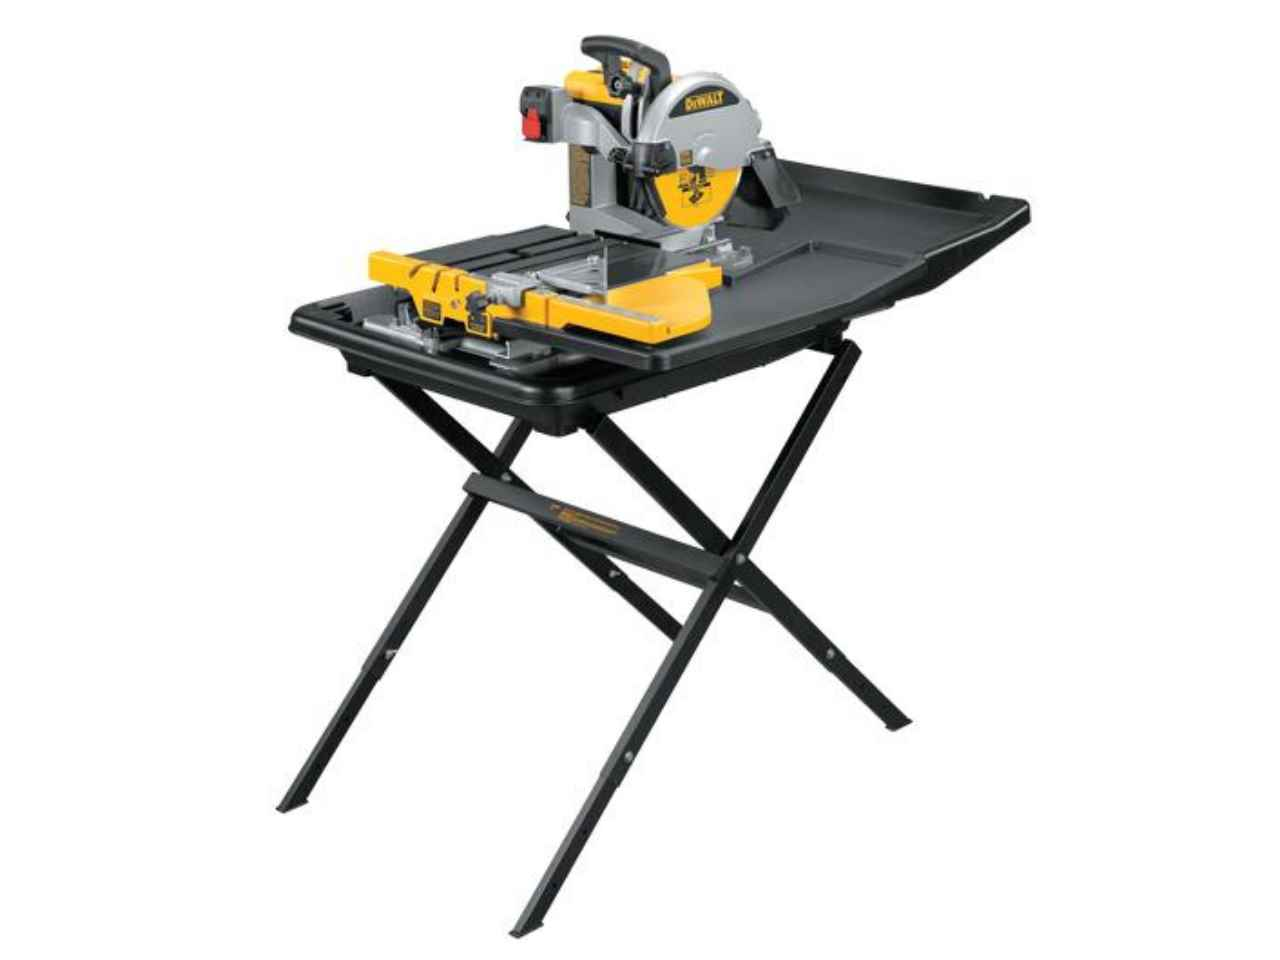 Dewalt d24000stand2 240v wet tile saw with slide table and d240001 stand Used table saw